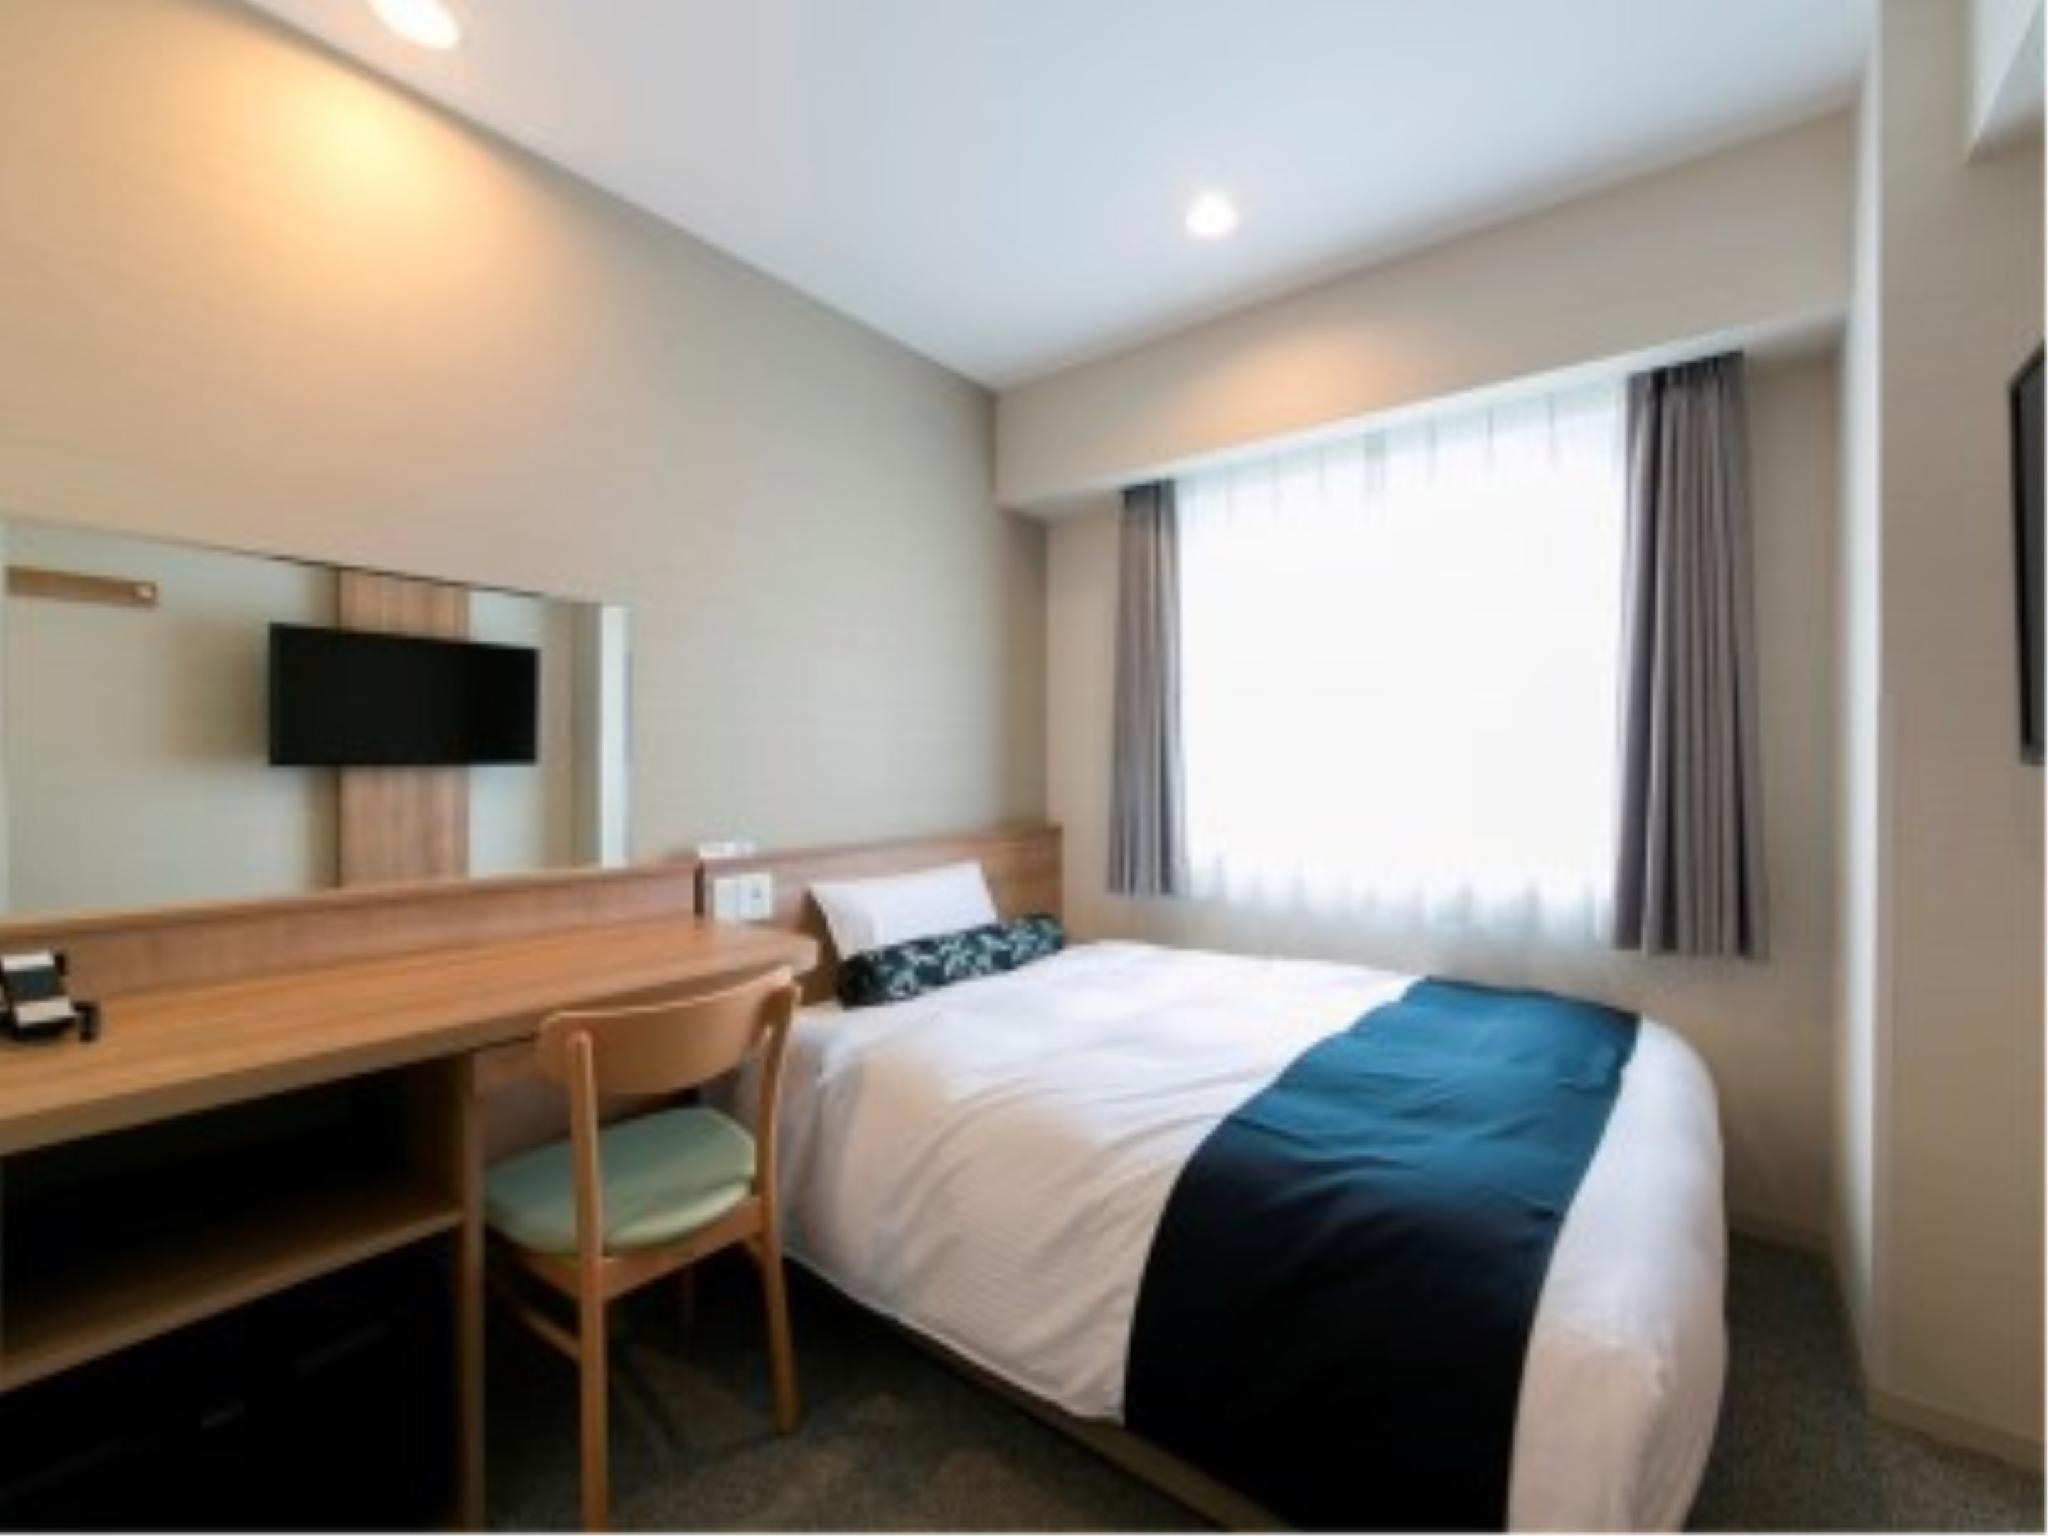 Premium Single Room (Max 2 Guests *Up to 1 Adult Guest)